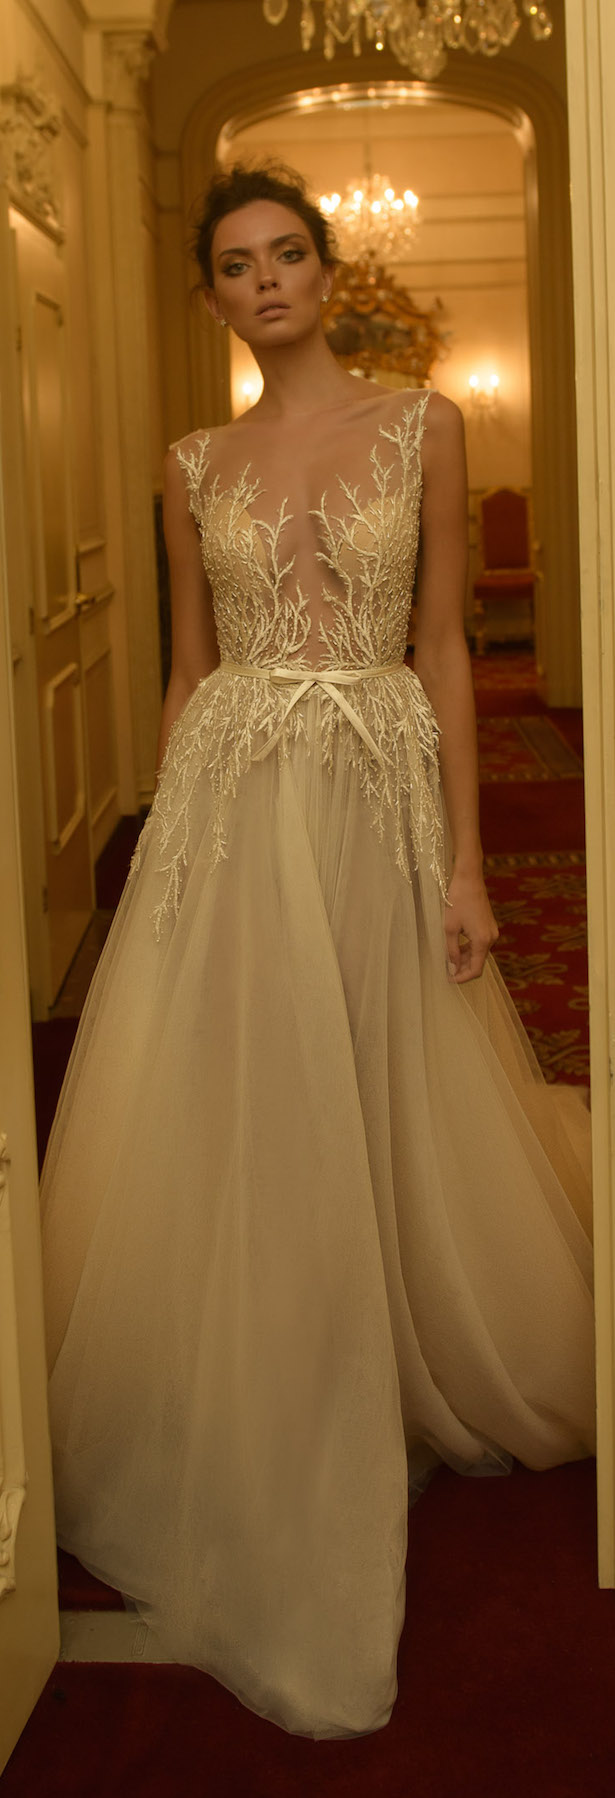 Ester haute couture 2016 bridal collection belle the for Haute couture houses 2016